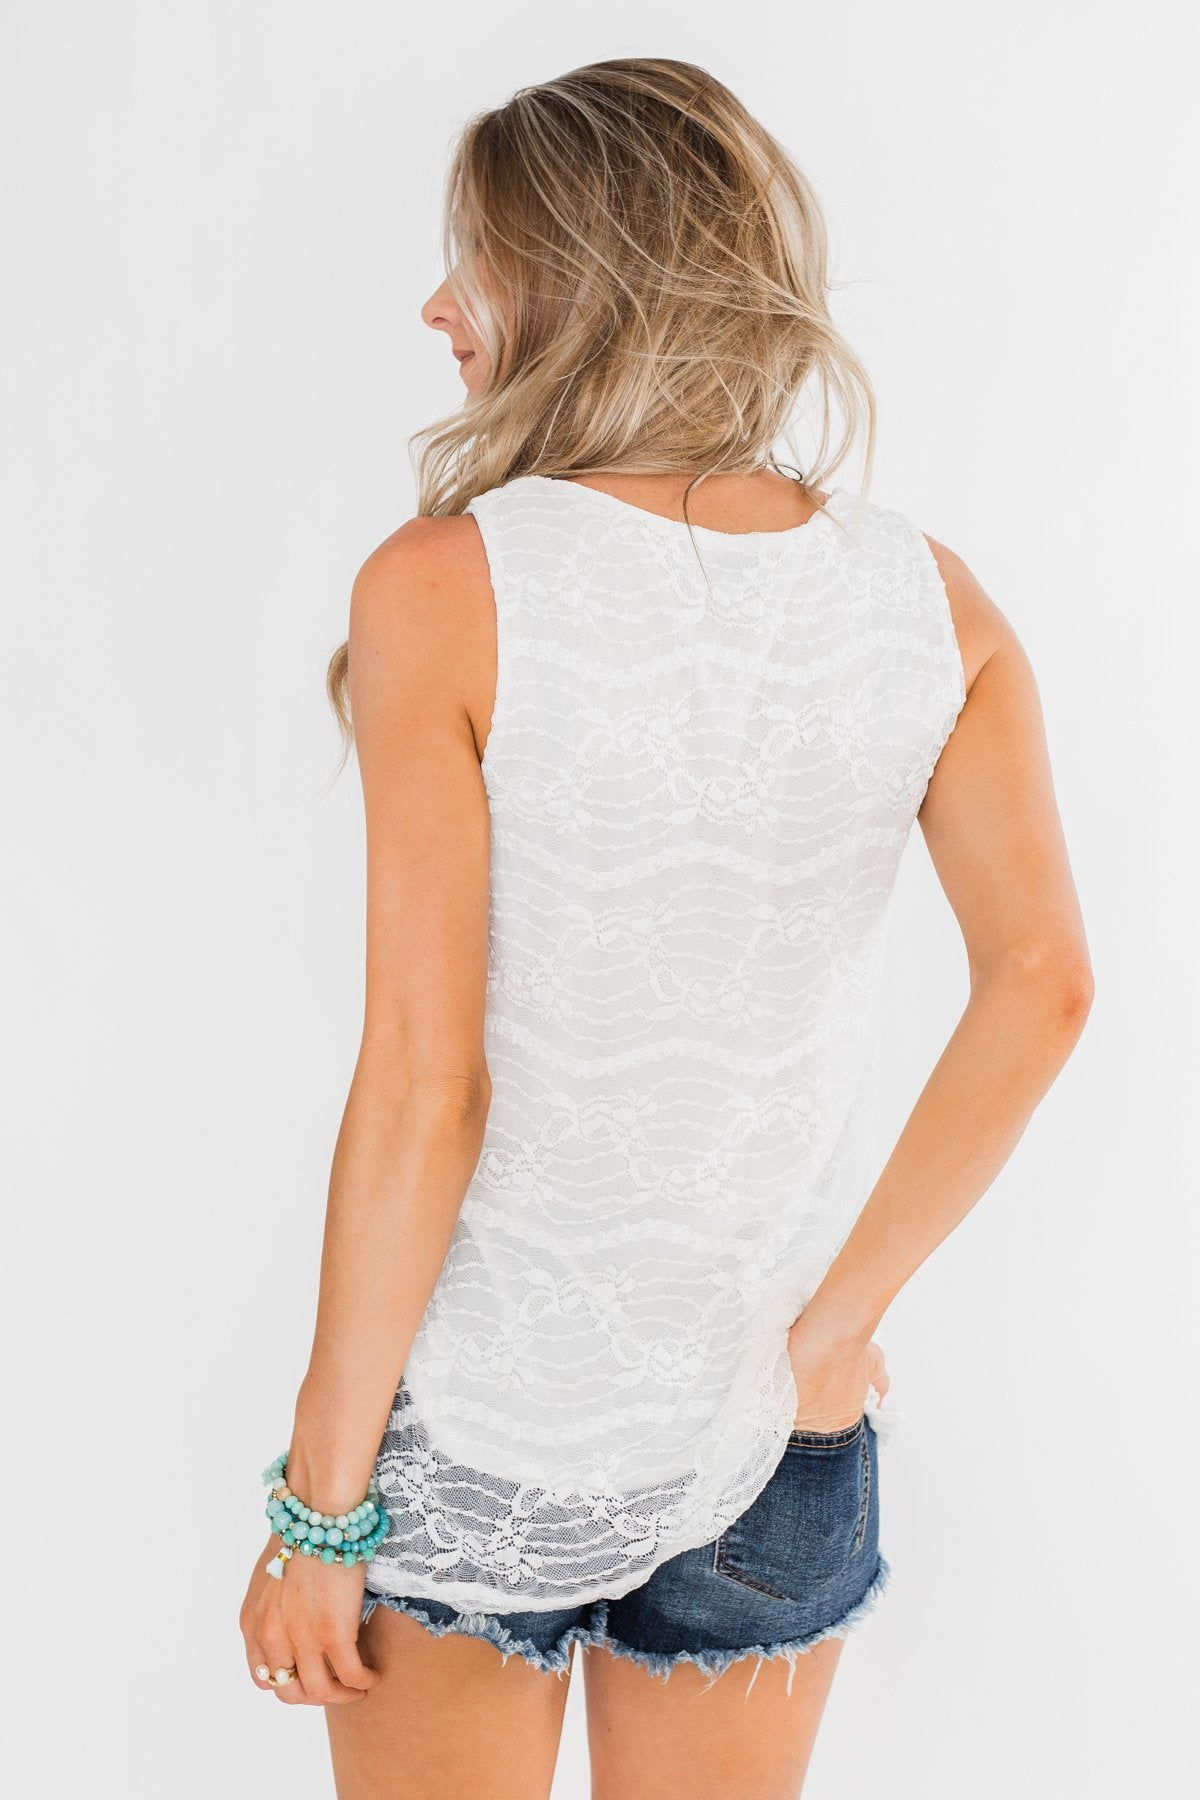 The Perfect Choice Lace Tank Top- Ivory